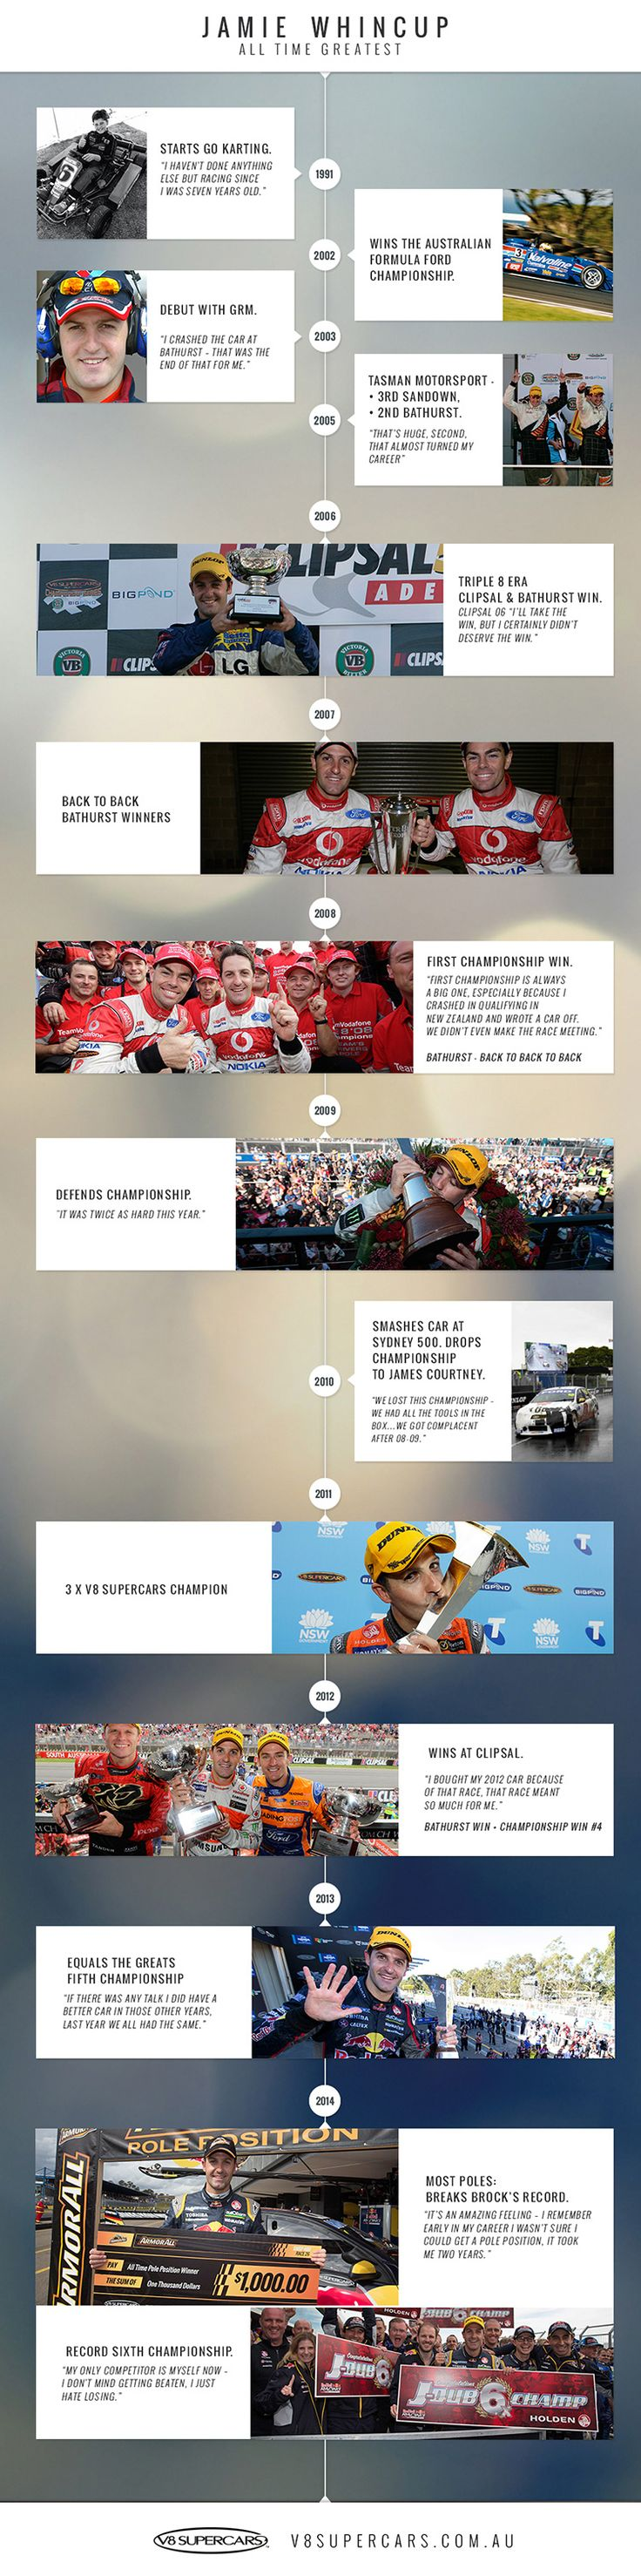 Whincup's career timeline